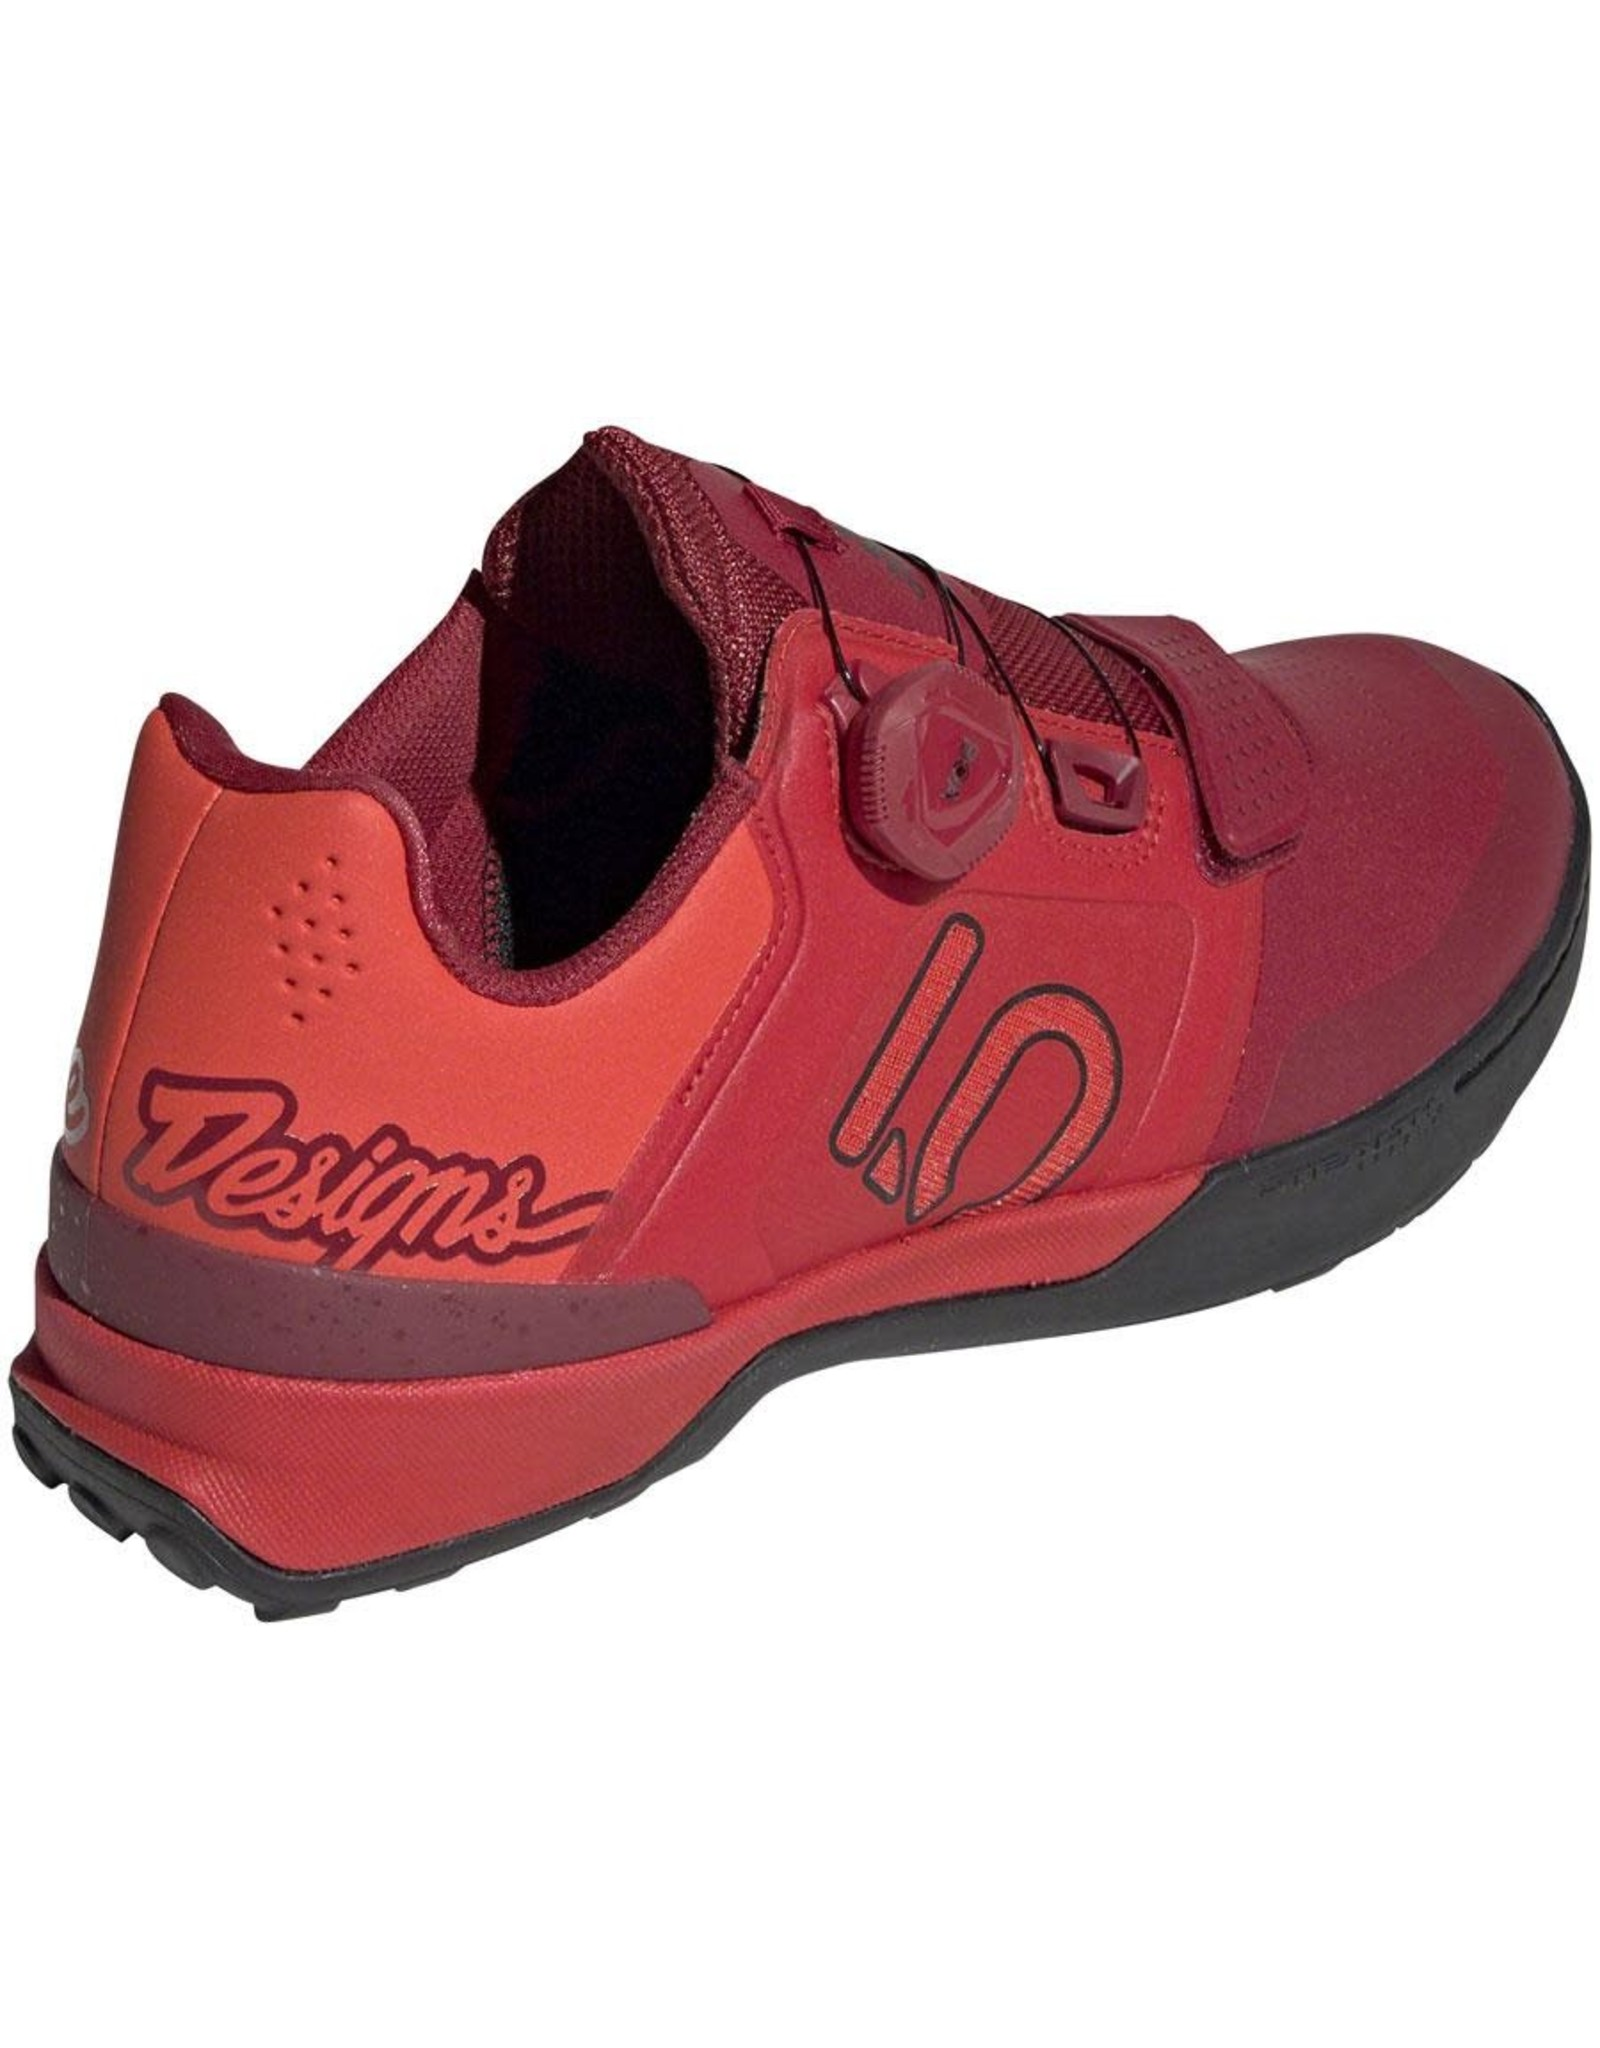 FIVE TEN KESTREL PRO BOA - TLD - ROUGE